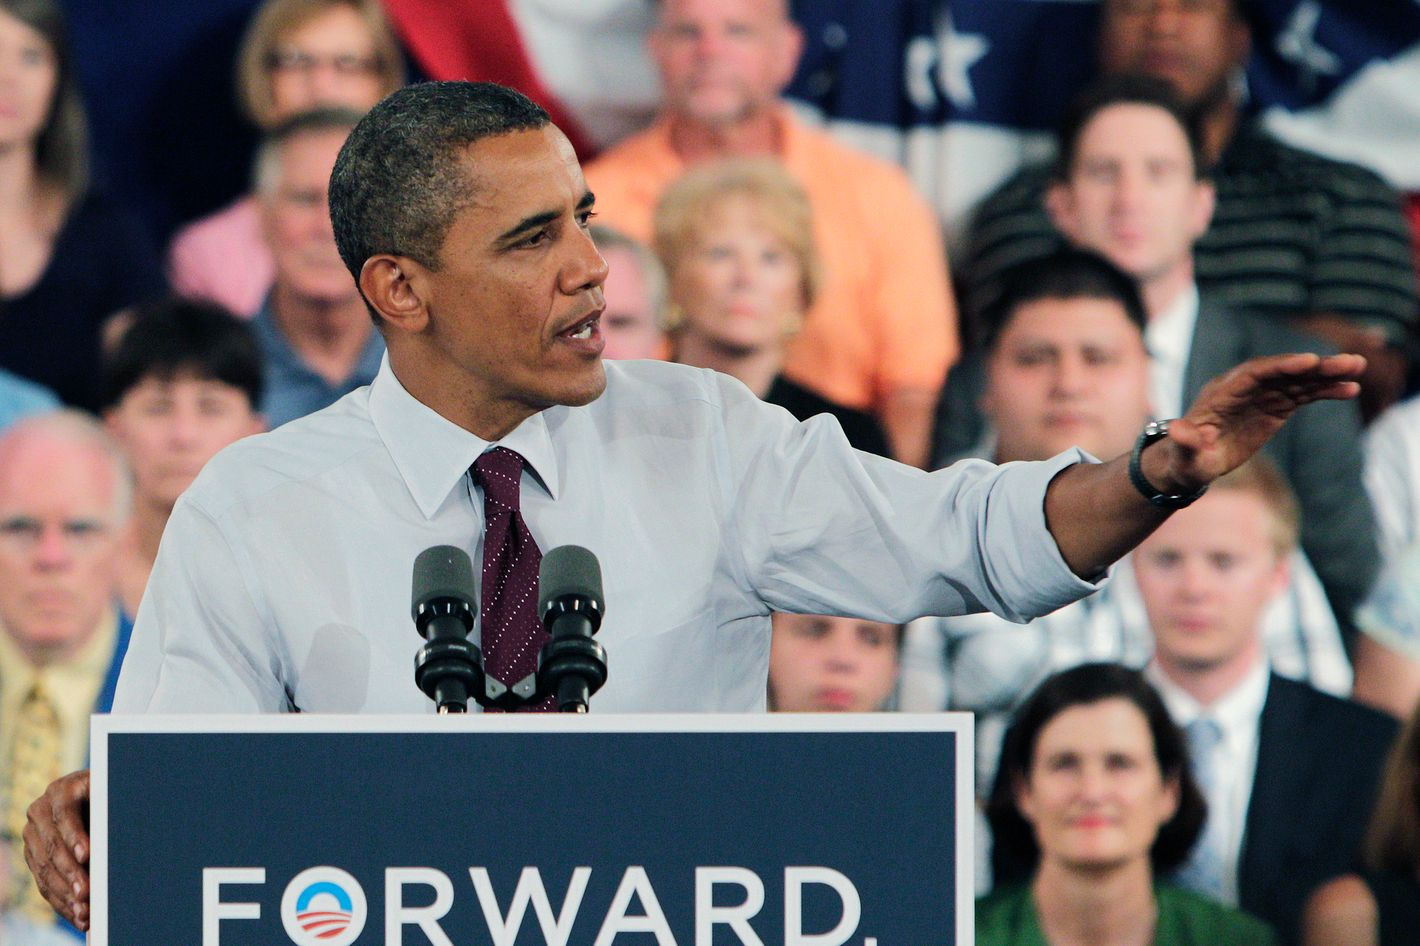 CINCINNATI, OH - JULY 16:  U.S. President Barack Obama speaks about the economy during a campaign event July 16, 2012 in Cincinnati, Ohio.  Obama discussed his plan to restore middle class security by paying down our debt in a way that ensures everyone pays their fair share and still invests in the things we need to create jobs and grow our economy over the long term.  (Photo by Jay LaPrete/Getty Images)